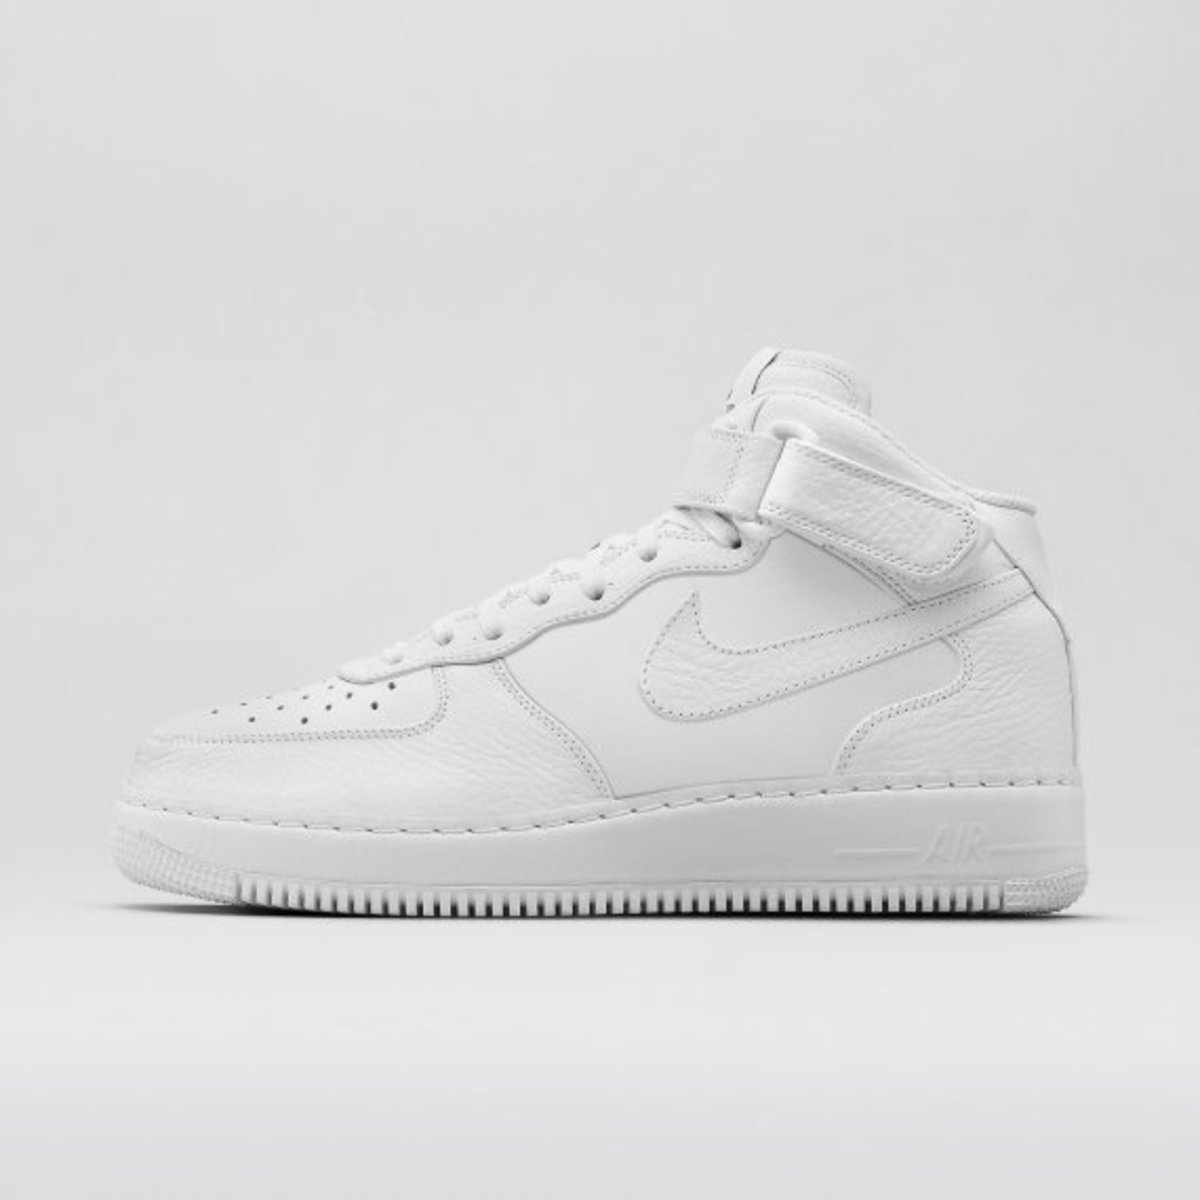 nike-air-force-1-cmft-collection-for-nikelab-12